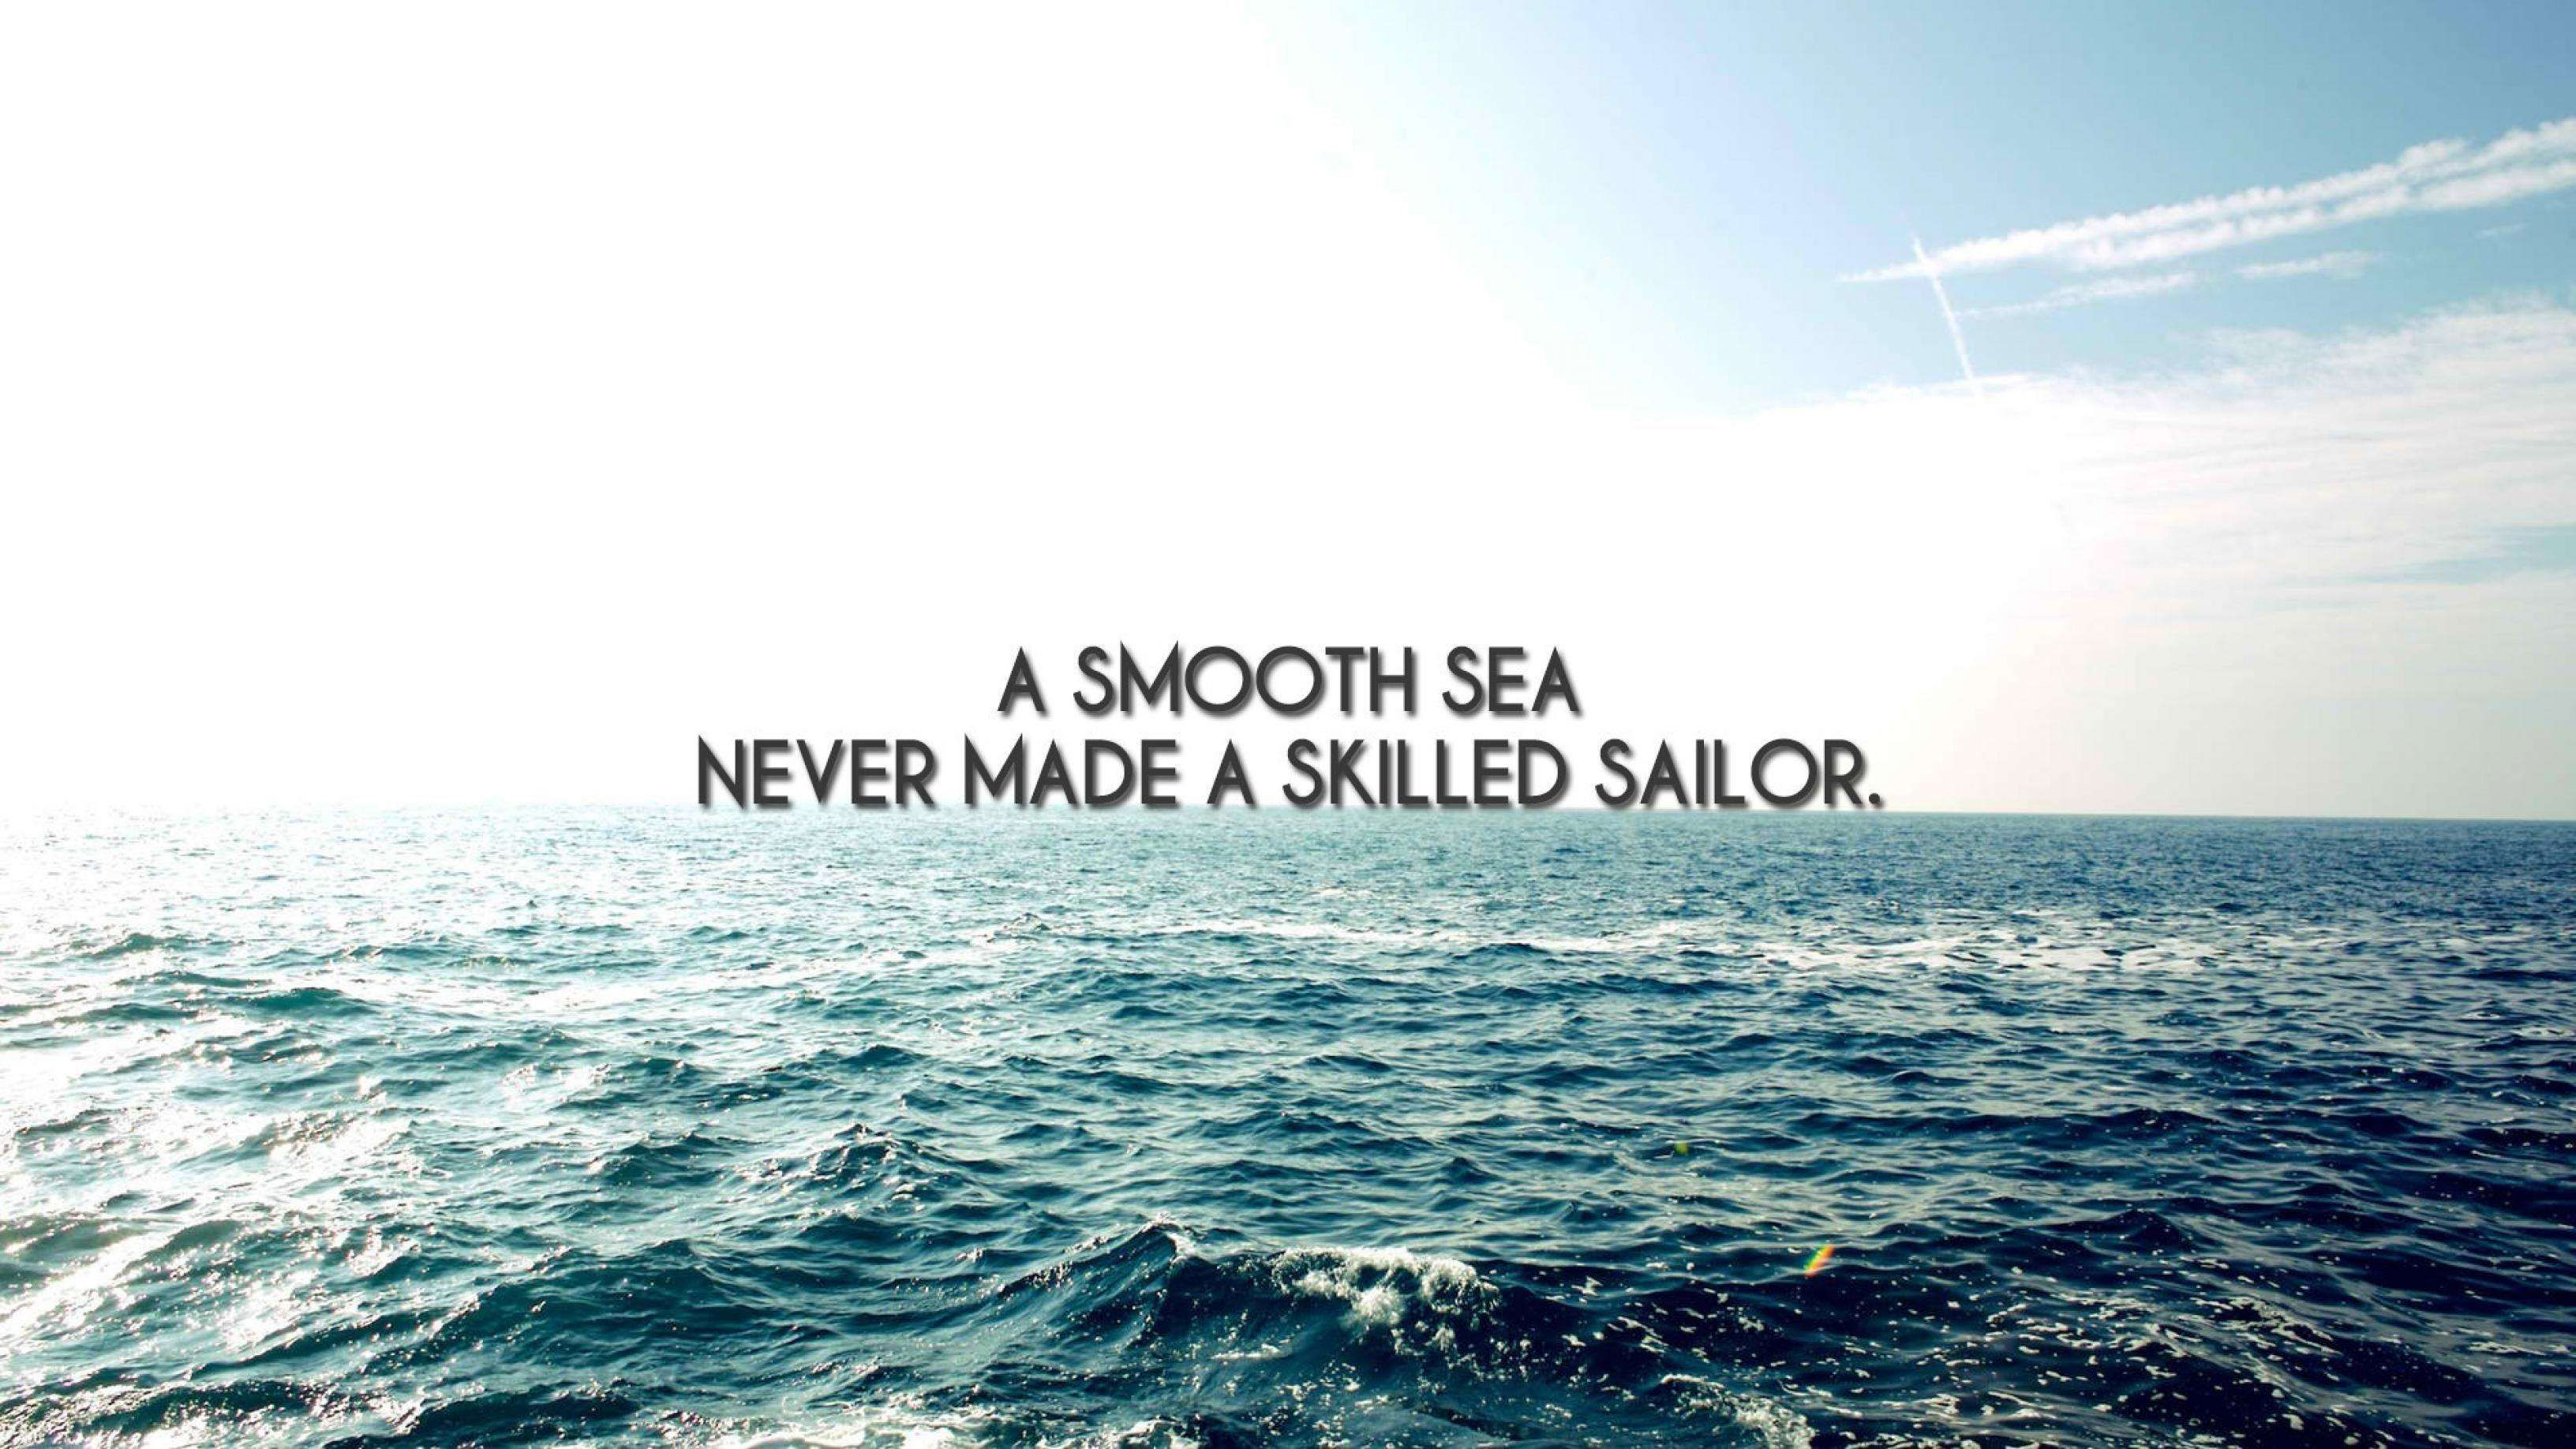 Hd wallpaper quotes for laptop - Life Good Making Quotes For Whatsapp Dp Hd Photos